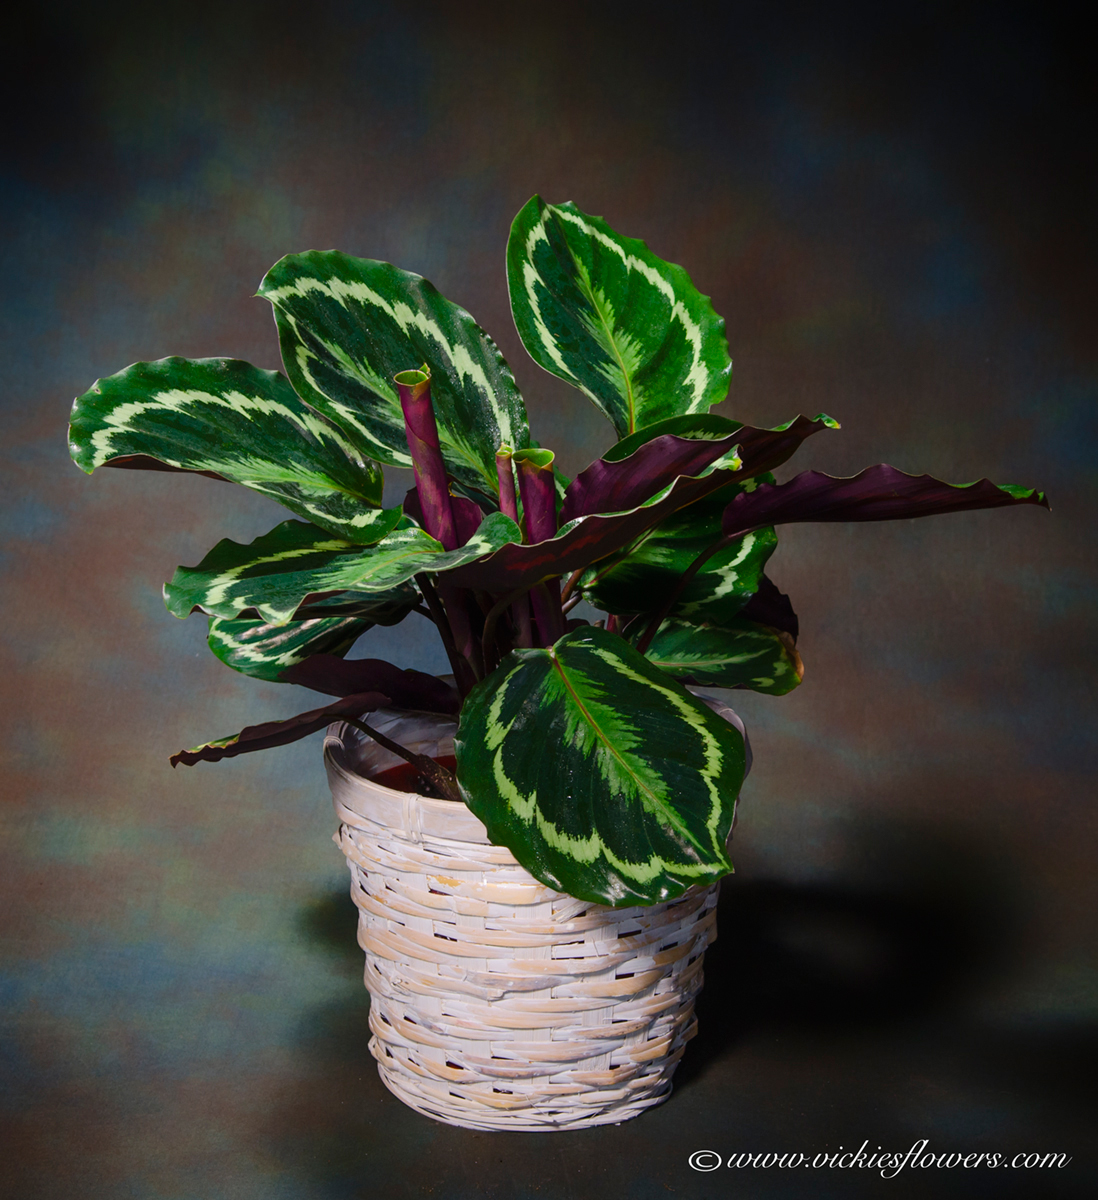 Indoor Plants Ip 005 55 Plus Tax And Delivery Colorful Croton Plant With Bright Green Yellow Foliage In A Wicker Basket Perfect To Brighten Up Any